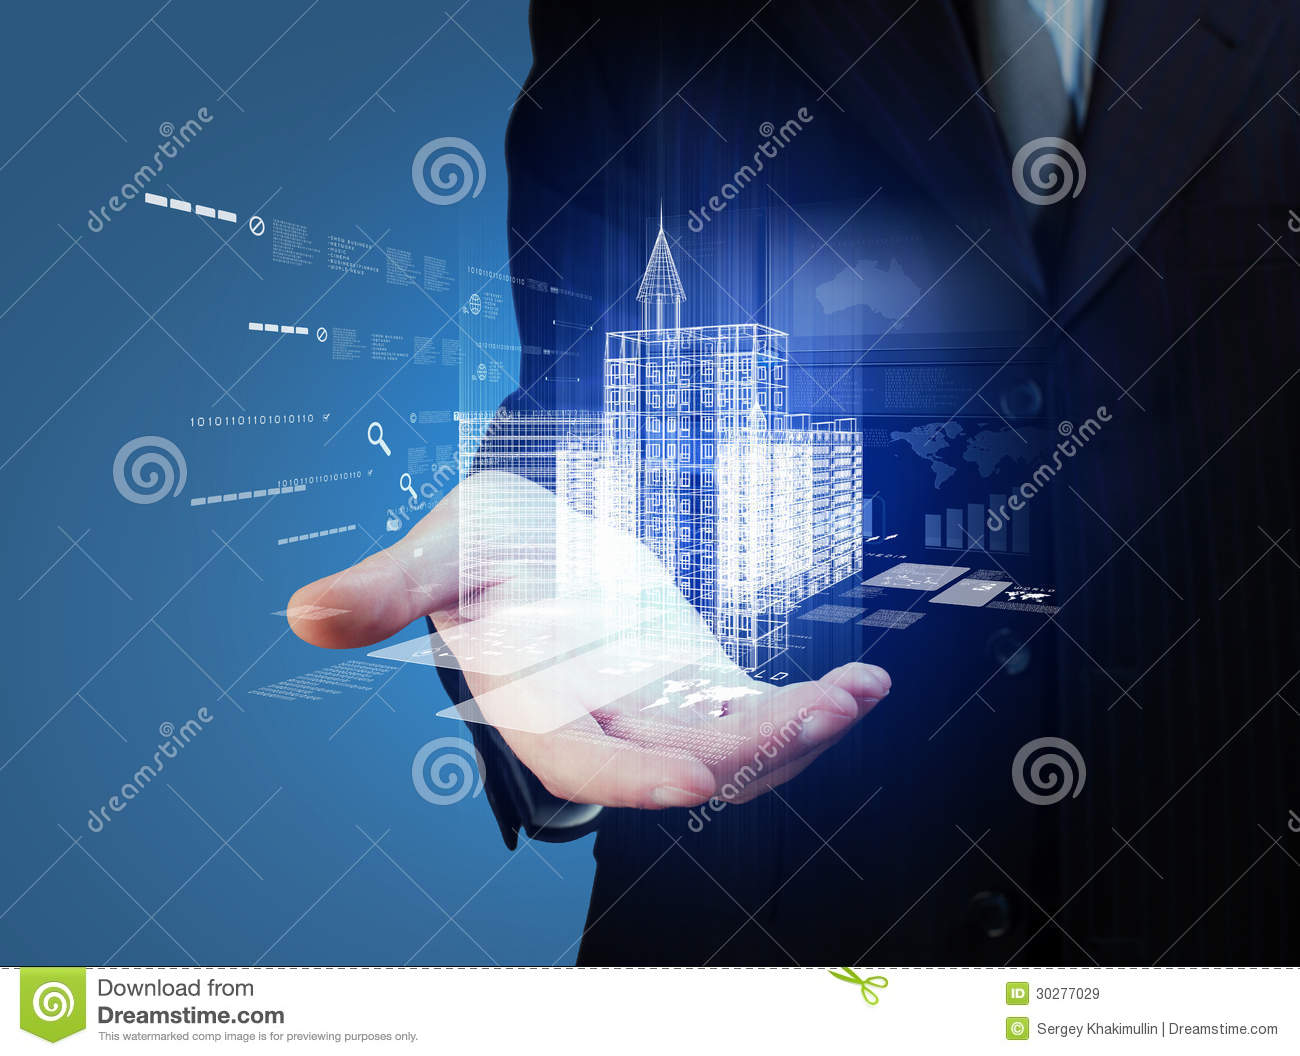 Automation Technology: Engineering Automation Building Design Stock Image